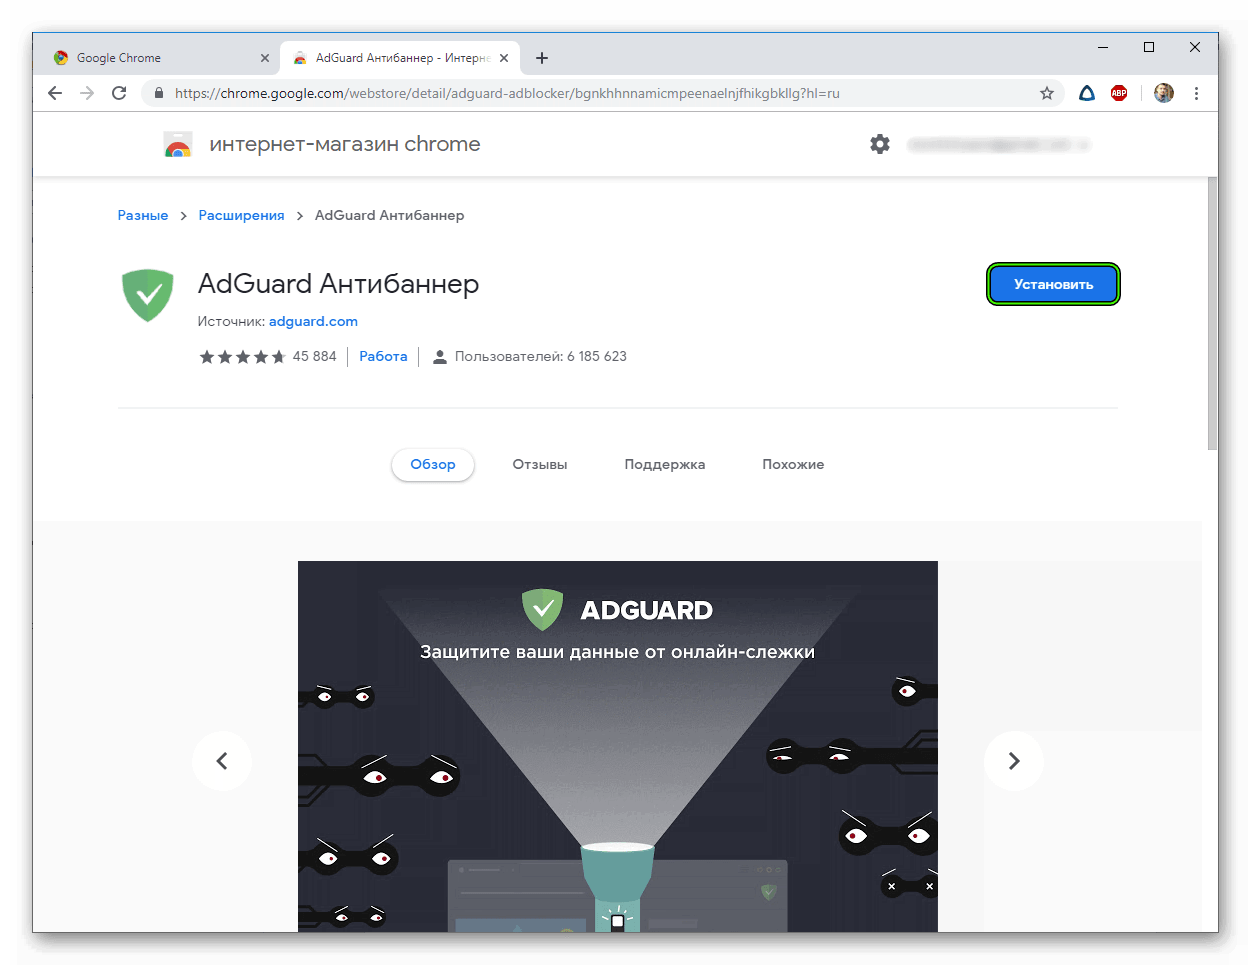 Установить AdGuard для Google Chrome